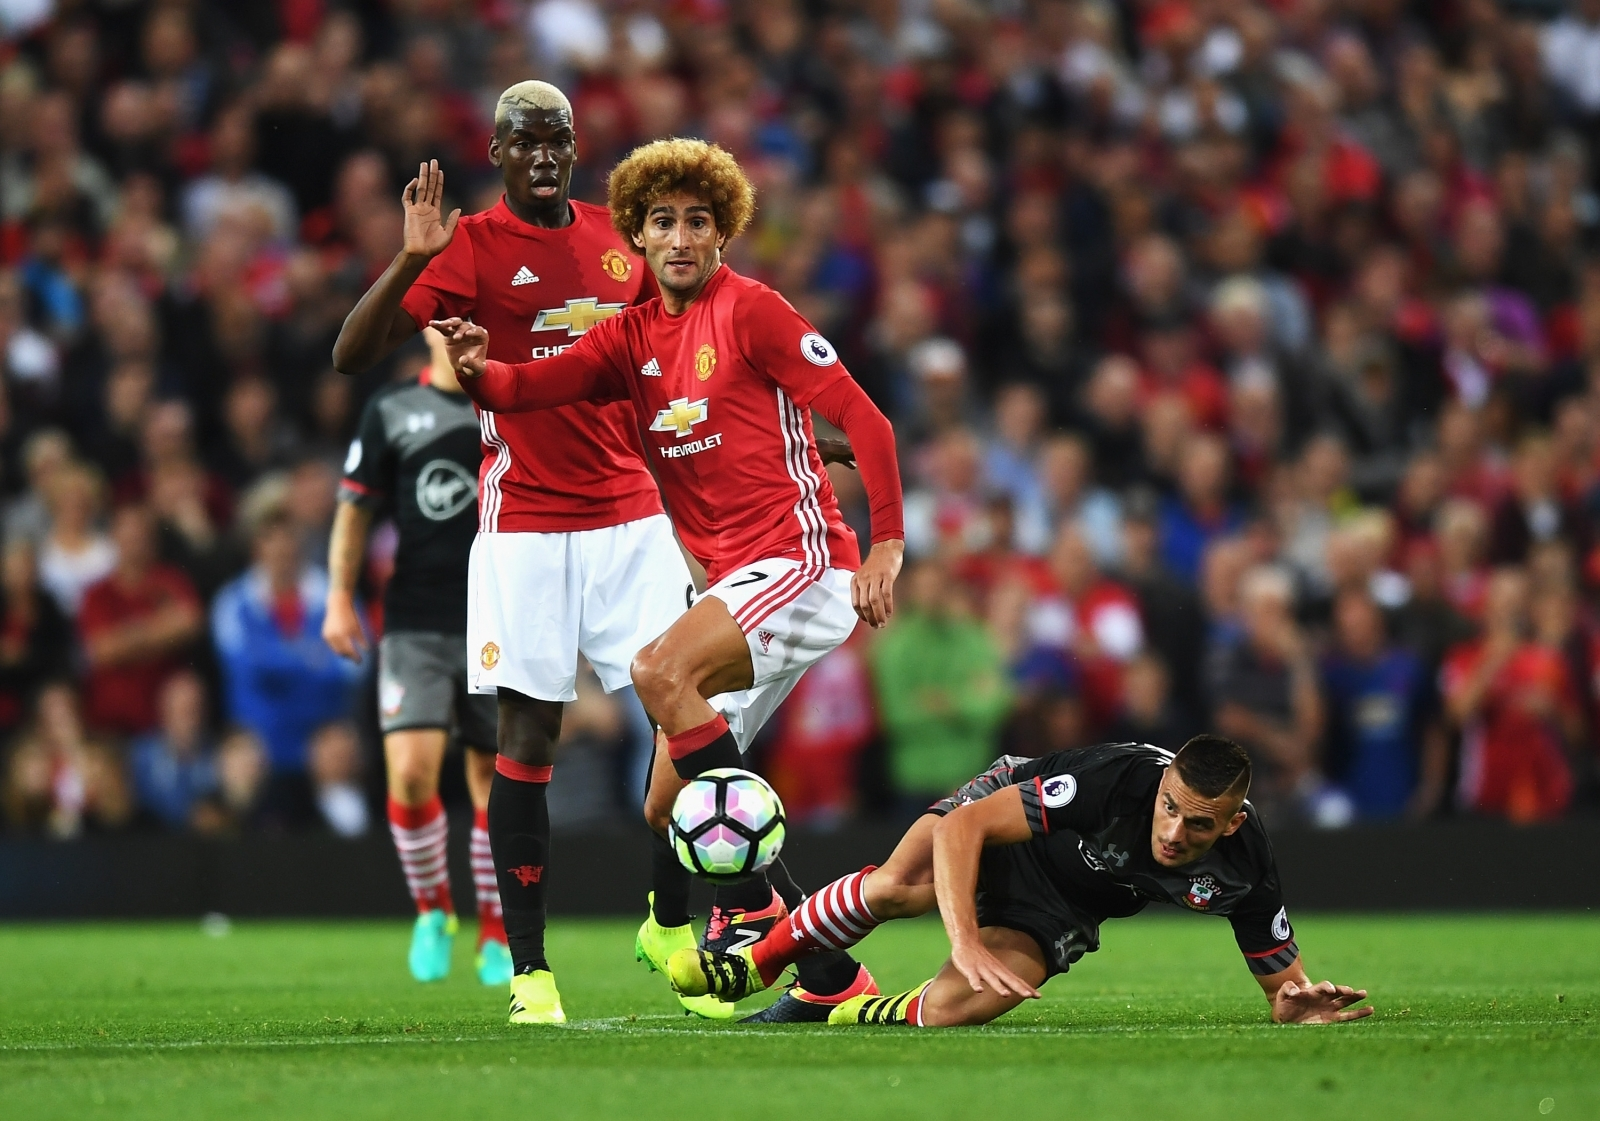 Manchester United without Paul Pogba Marouane Fellaini and